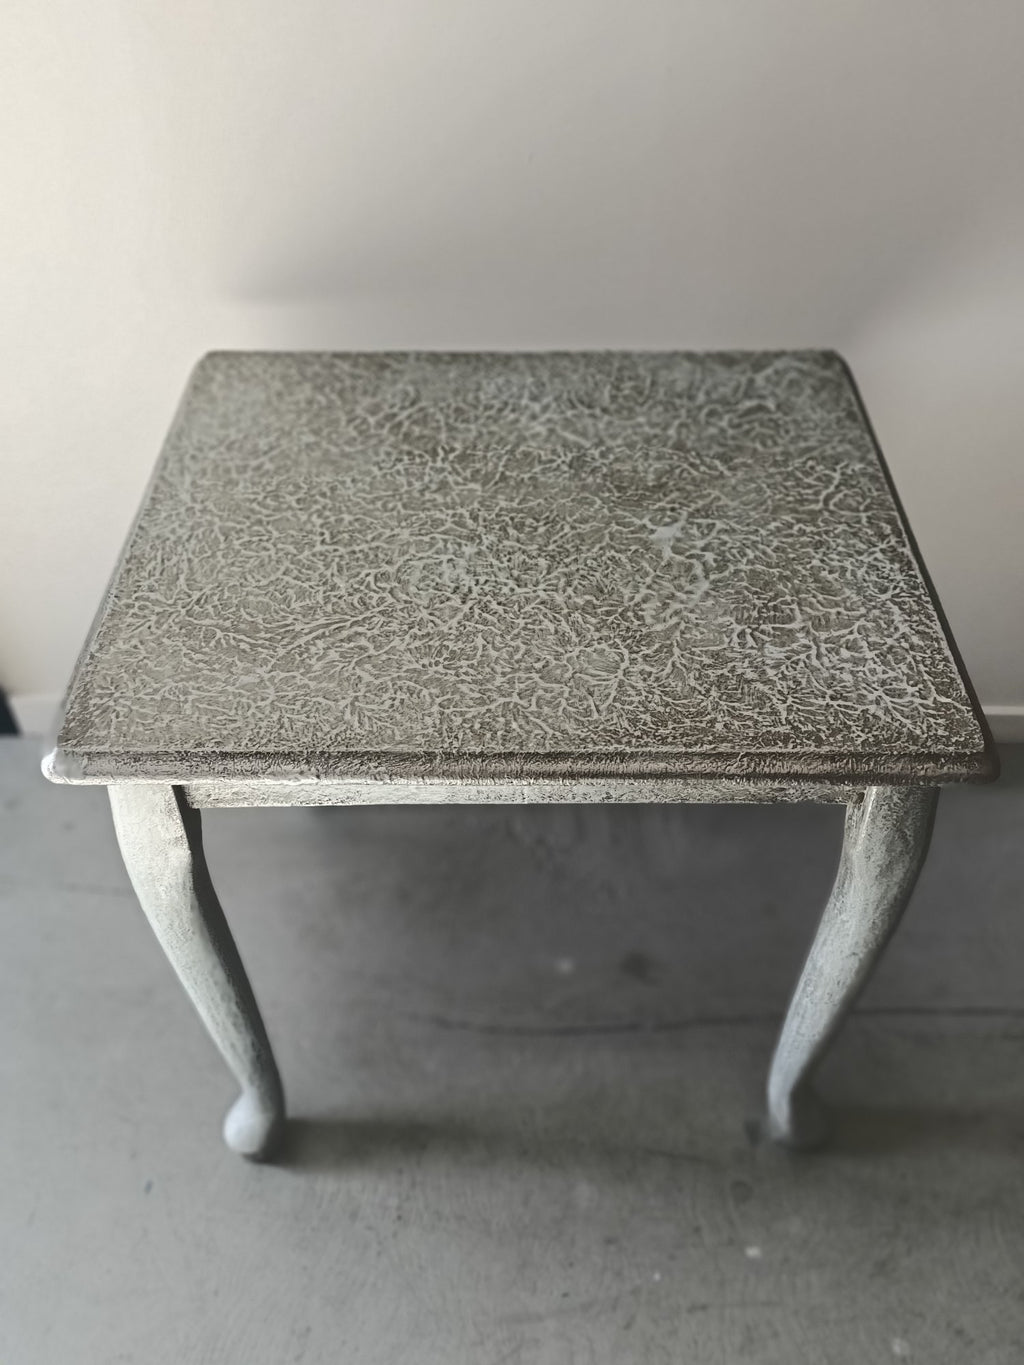 Highly textured table